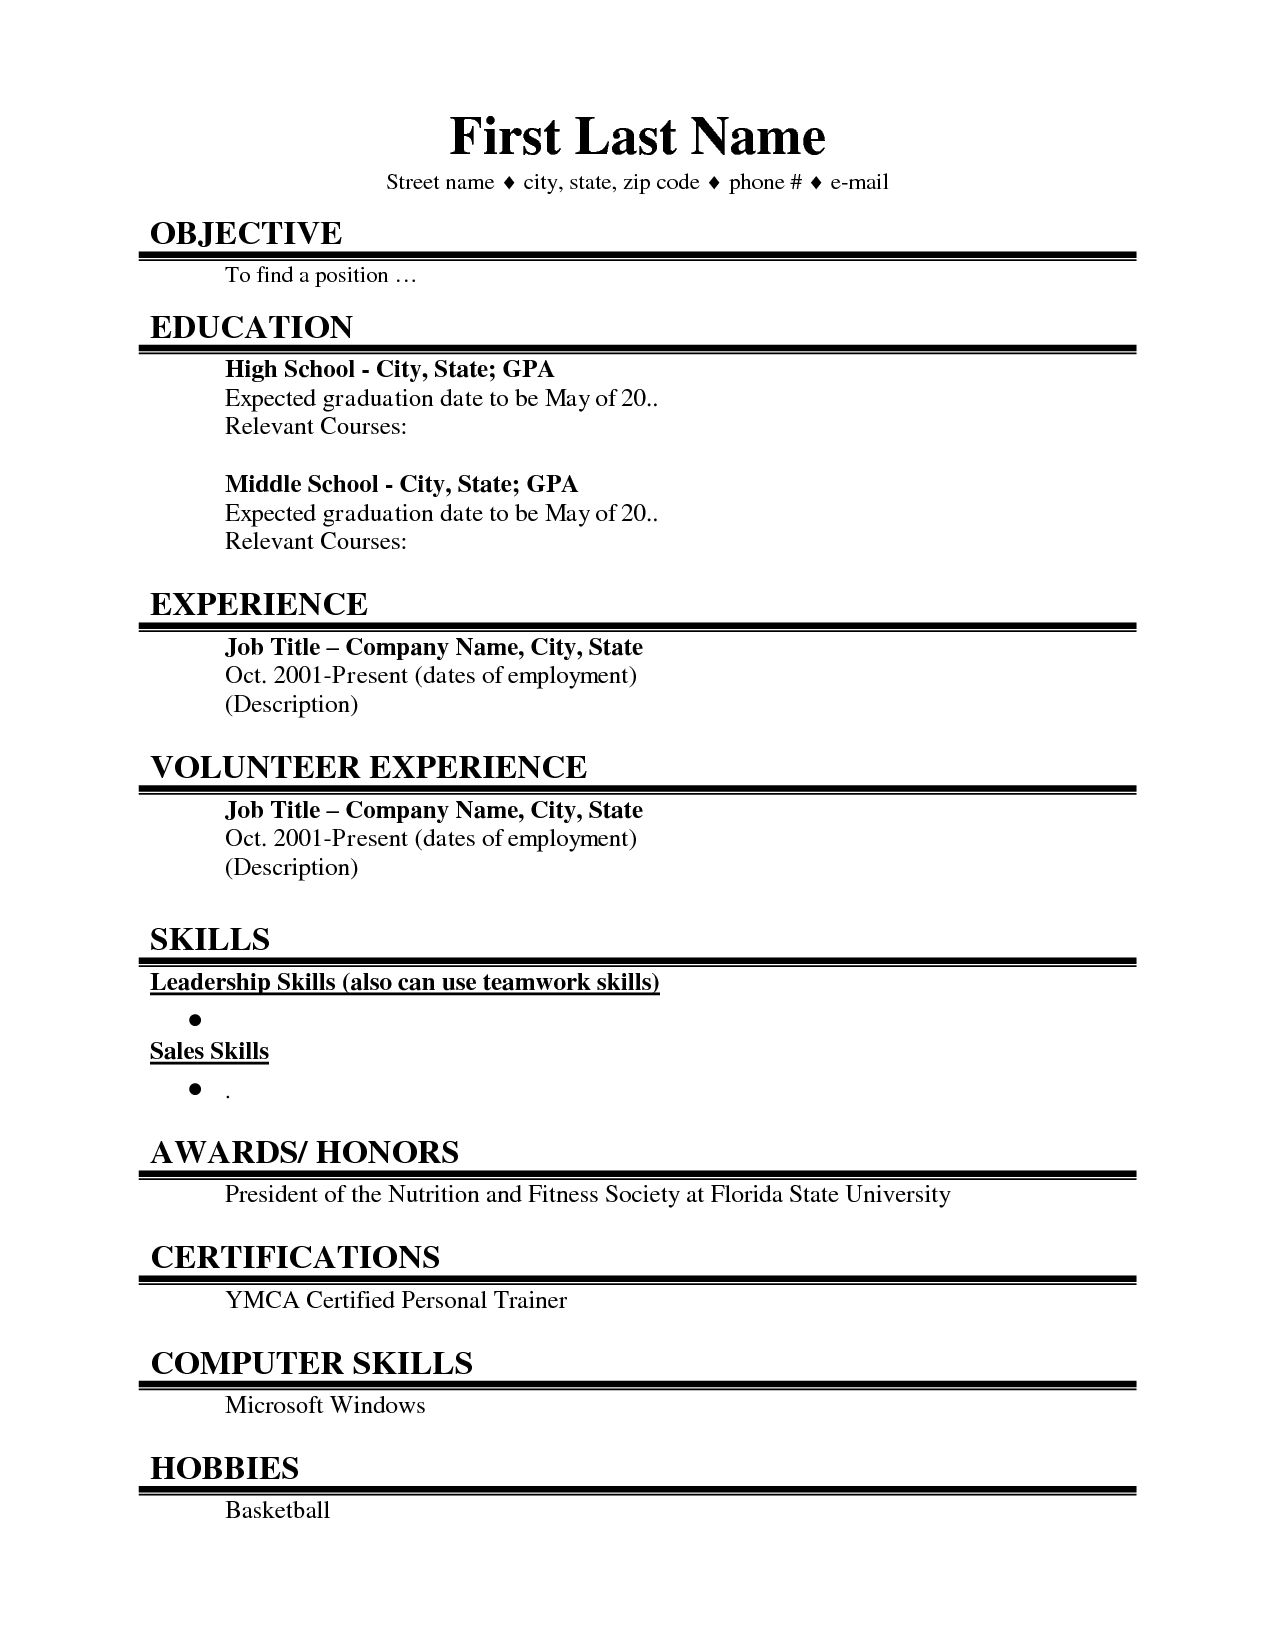 College Student Resume Examples Resume Builder Resume Templates Best Job Resume College Resume Template Job Resume Examples First Job Resume